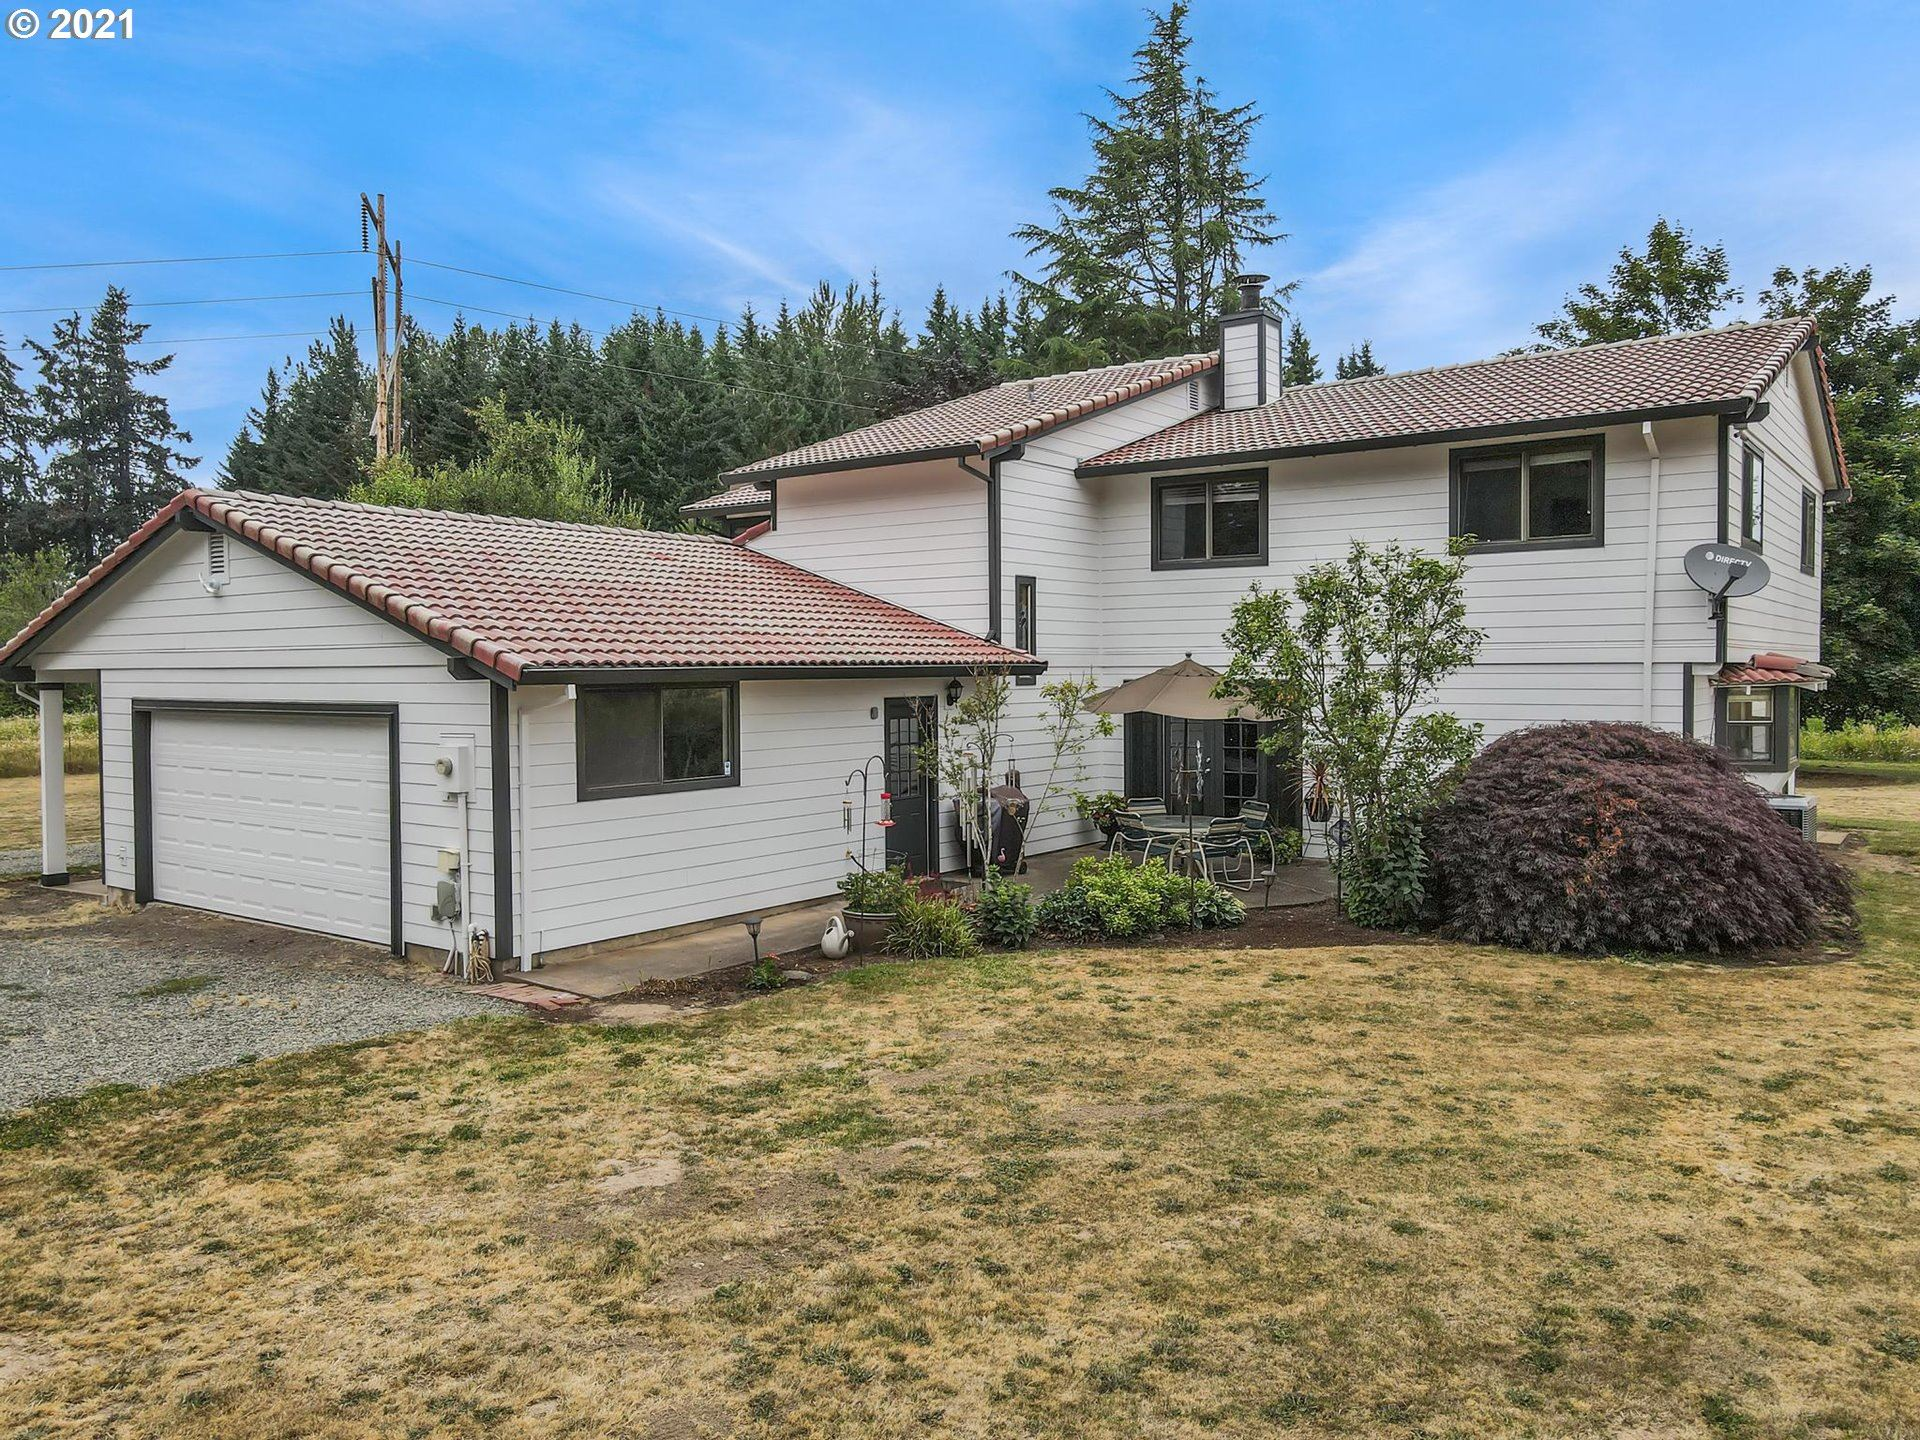 Photo of 29238 S BARLOW RD, Canby, OR 97013 (MLS # 21626275)